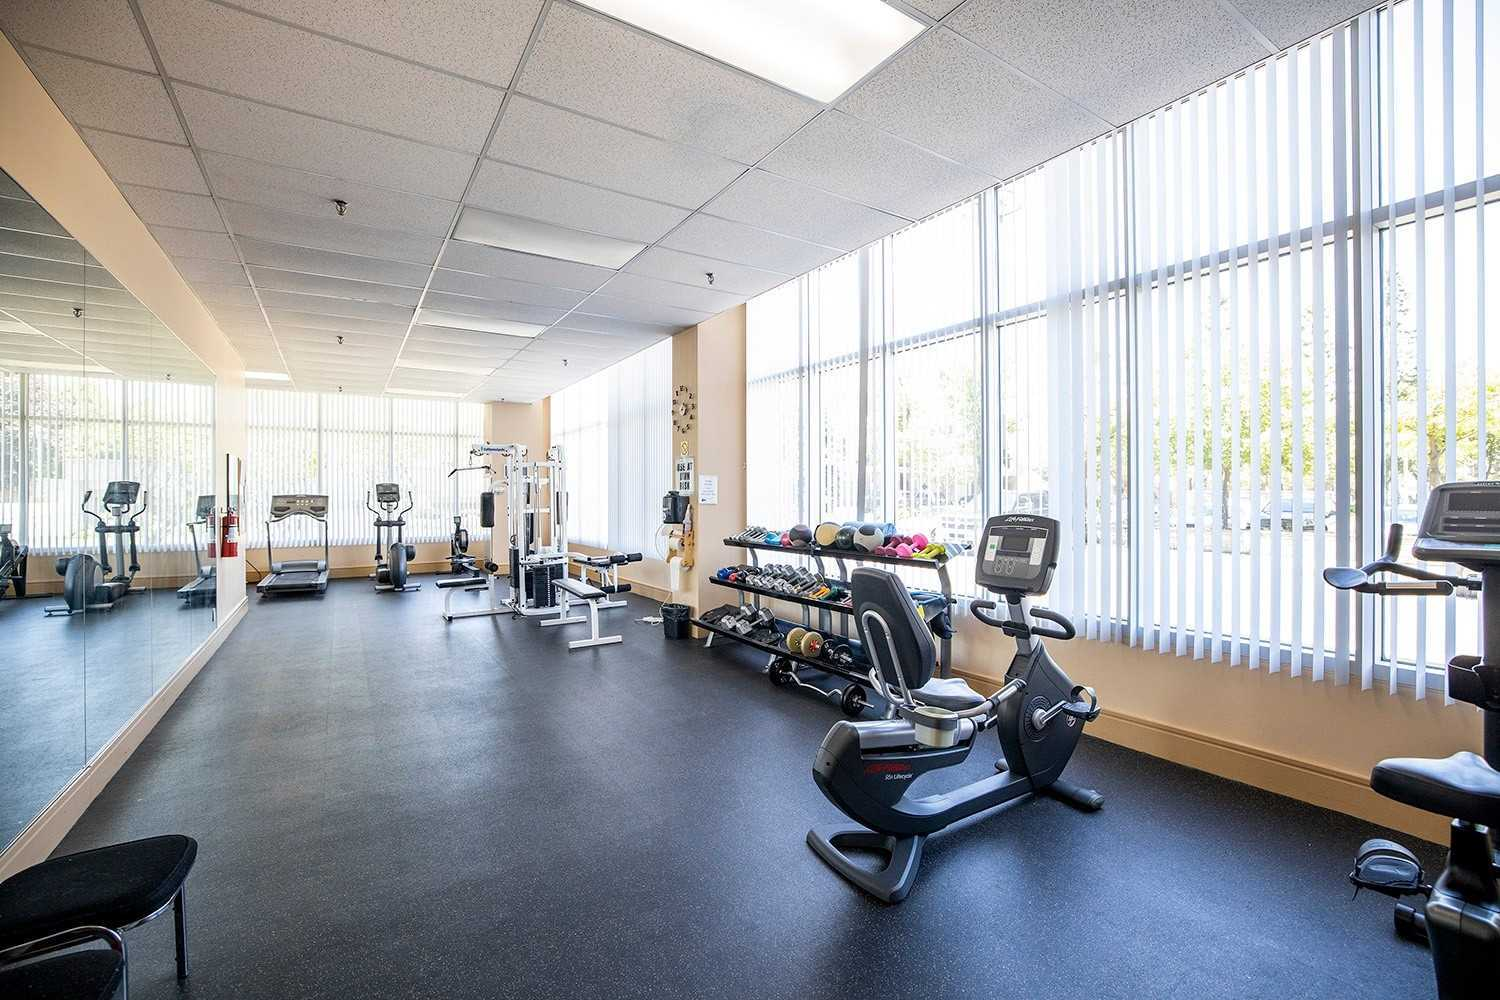 Image 10 of 20 showing inside of 2 Bedroom Condo Apt 2-Storey for Sale at 25 Cumberland Lane Unit# 112, Ajax L1S7K1